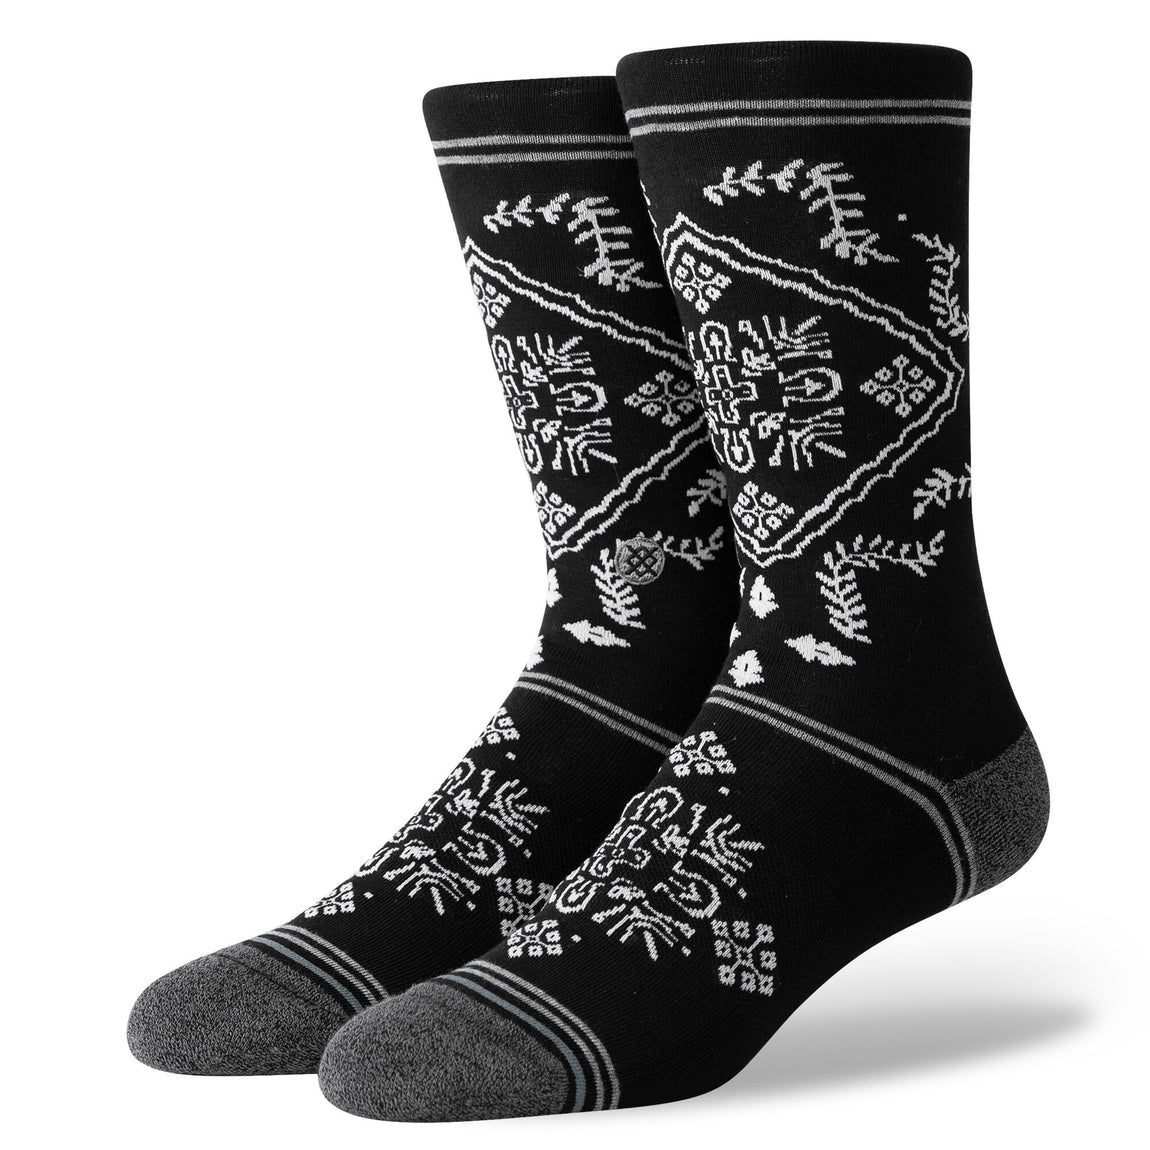 Stance Bandero Socks (Black) - Stance Bandero Socks (Black) -